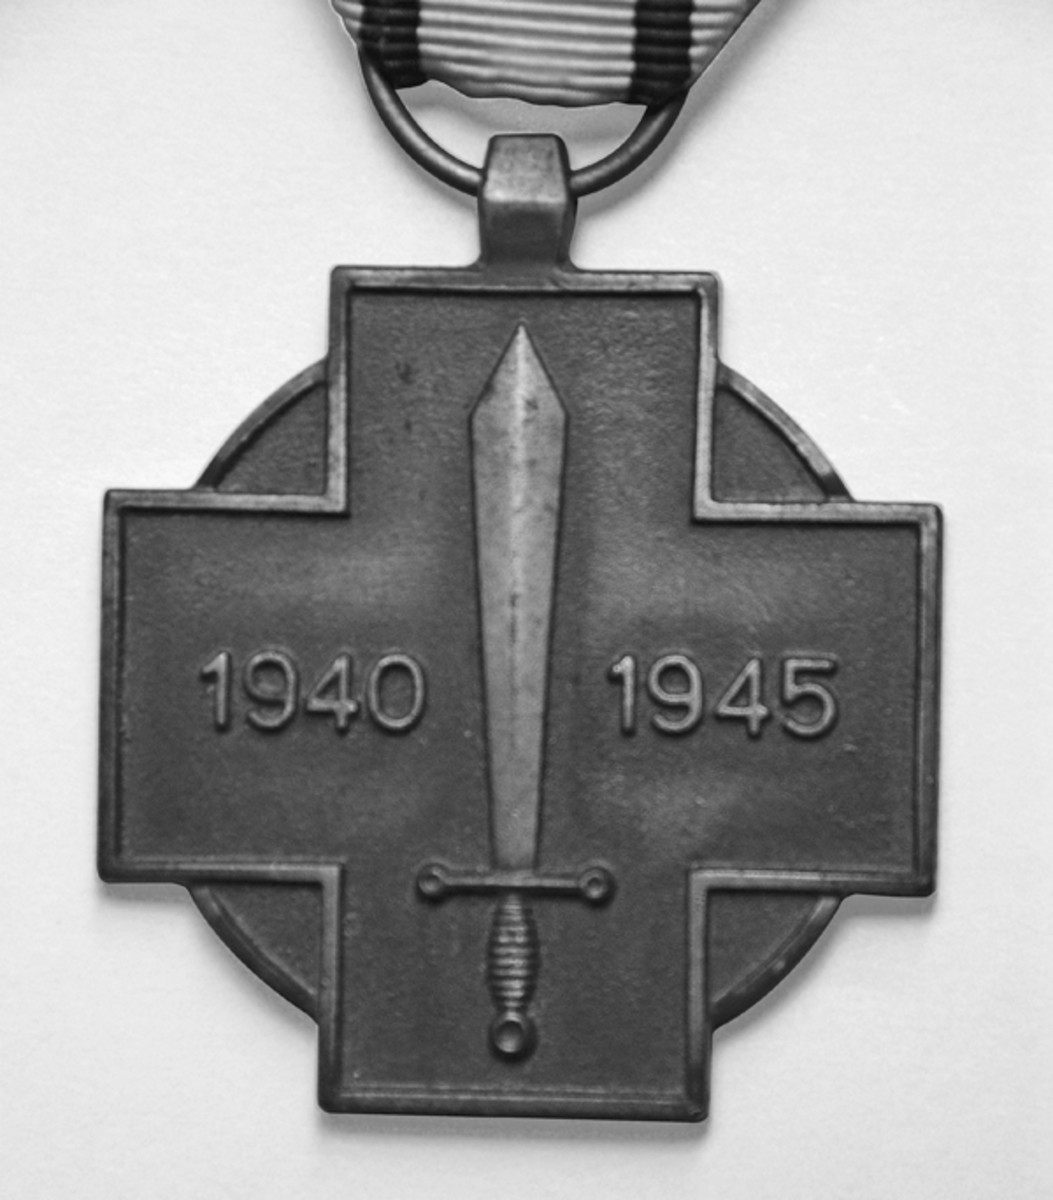 Reverse of the Military Combatant's Medal with its rather plain design.